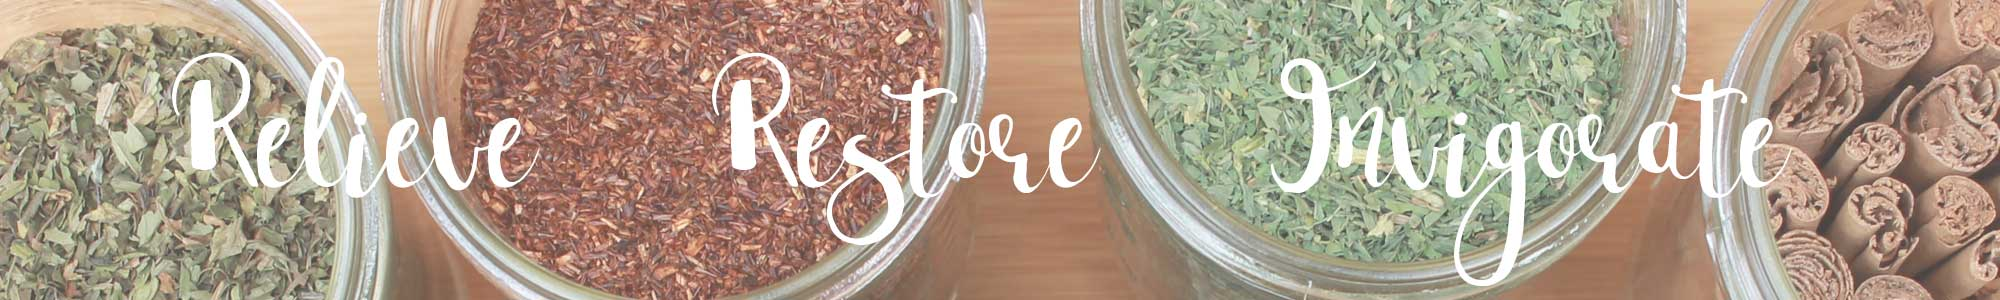 Herbal consultation banner image relieve restore invigorate your body holistically